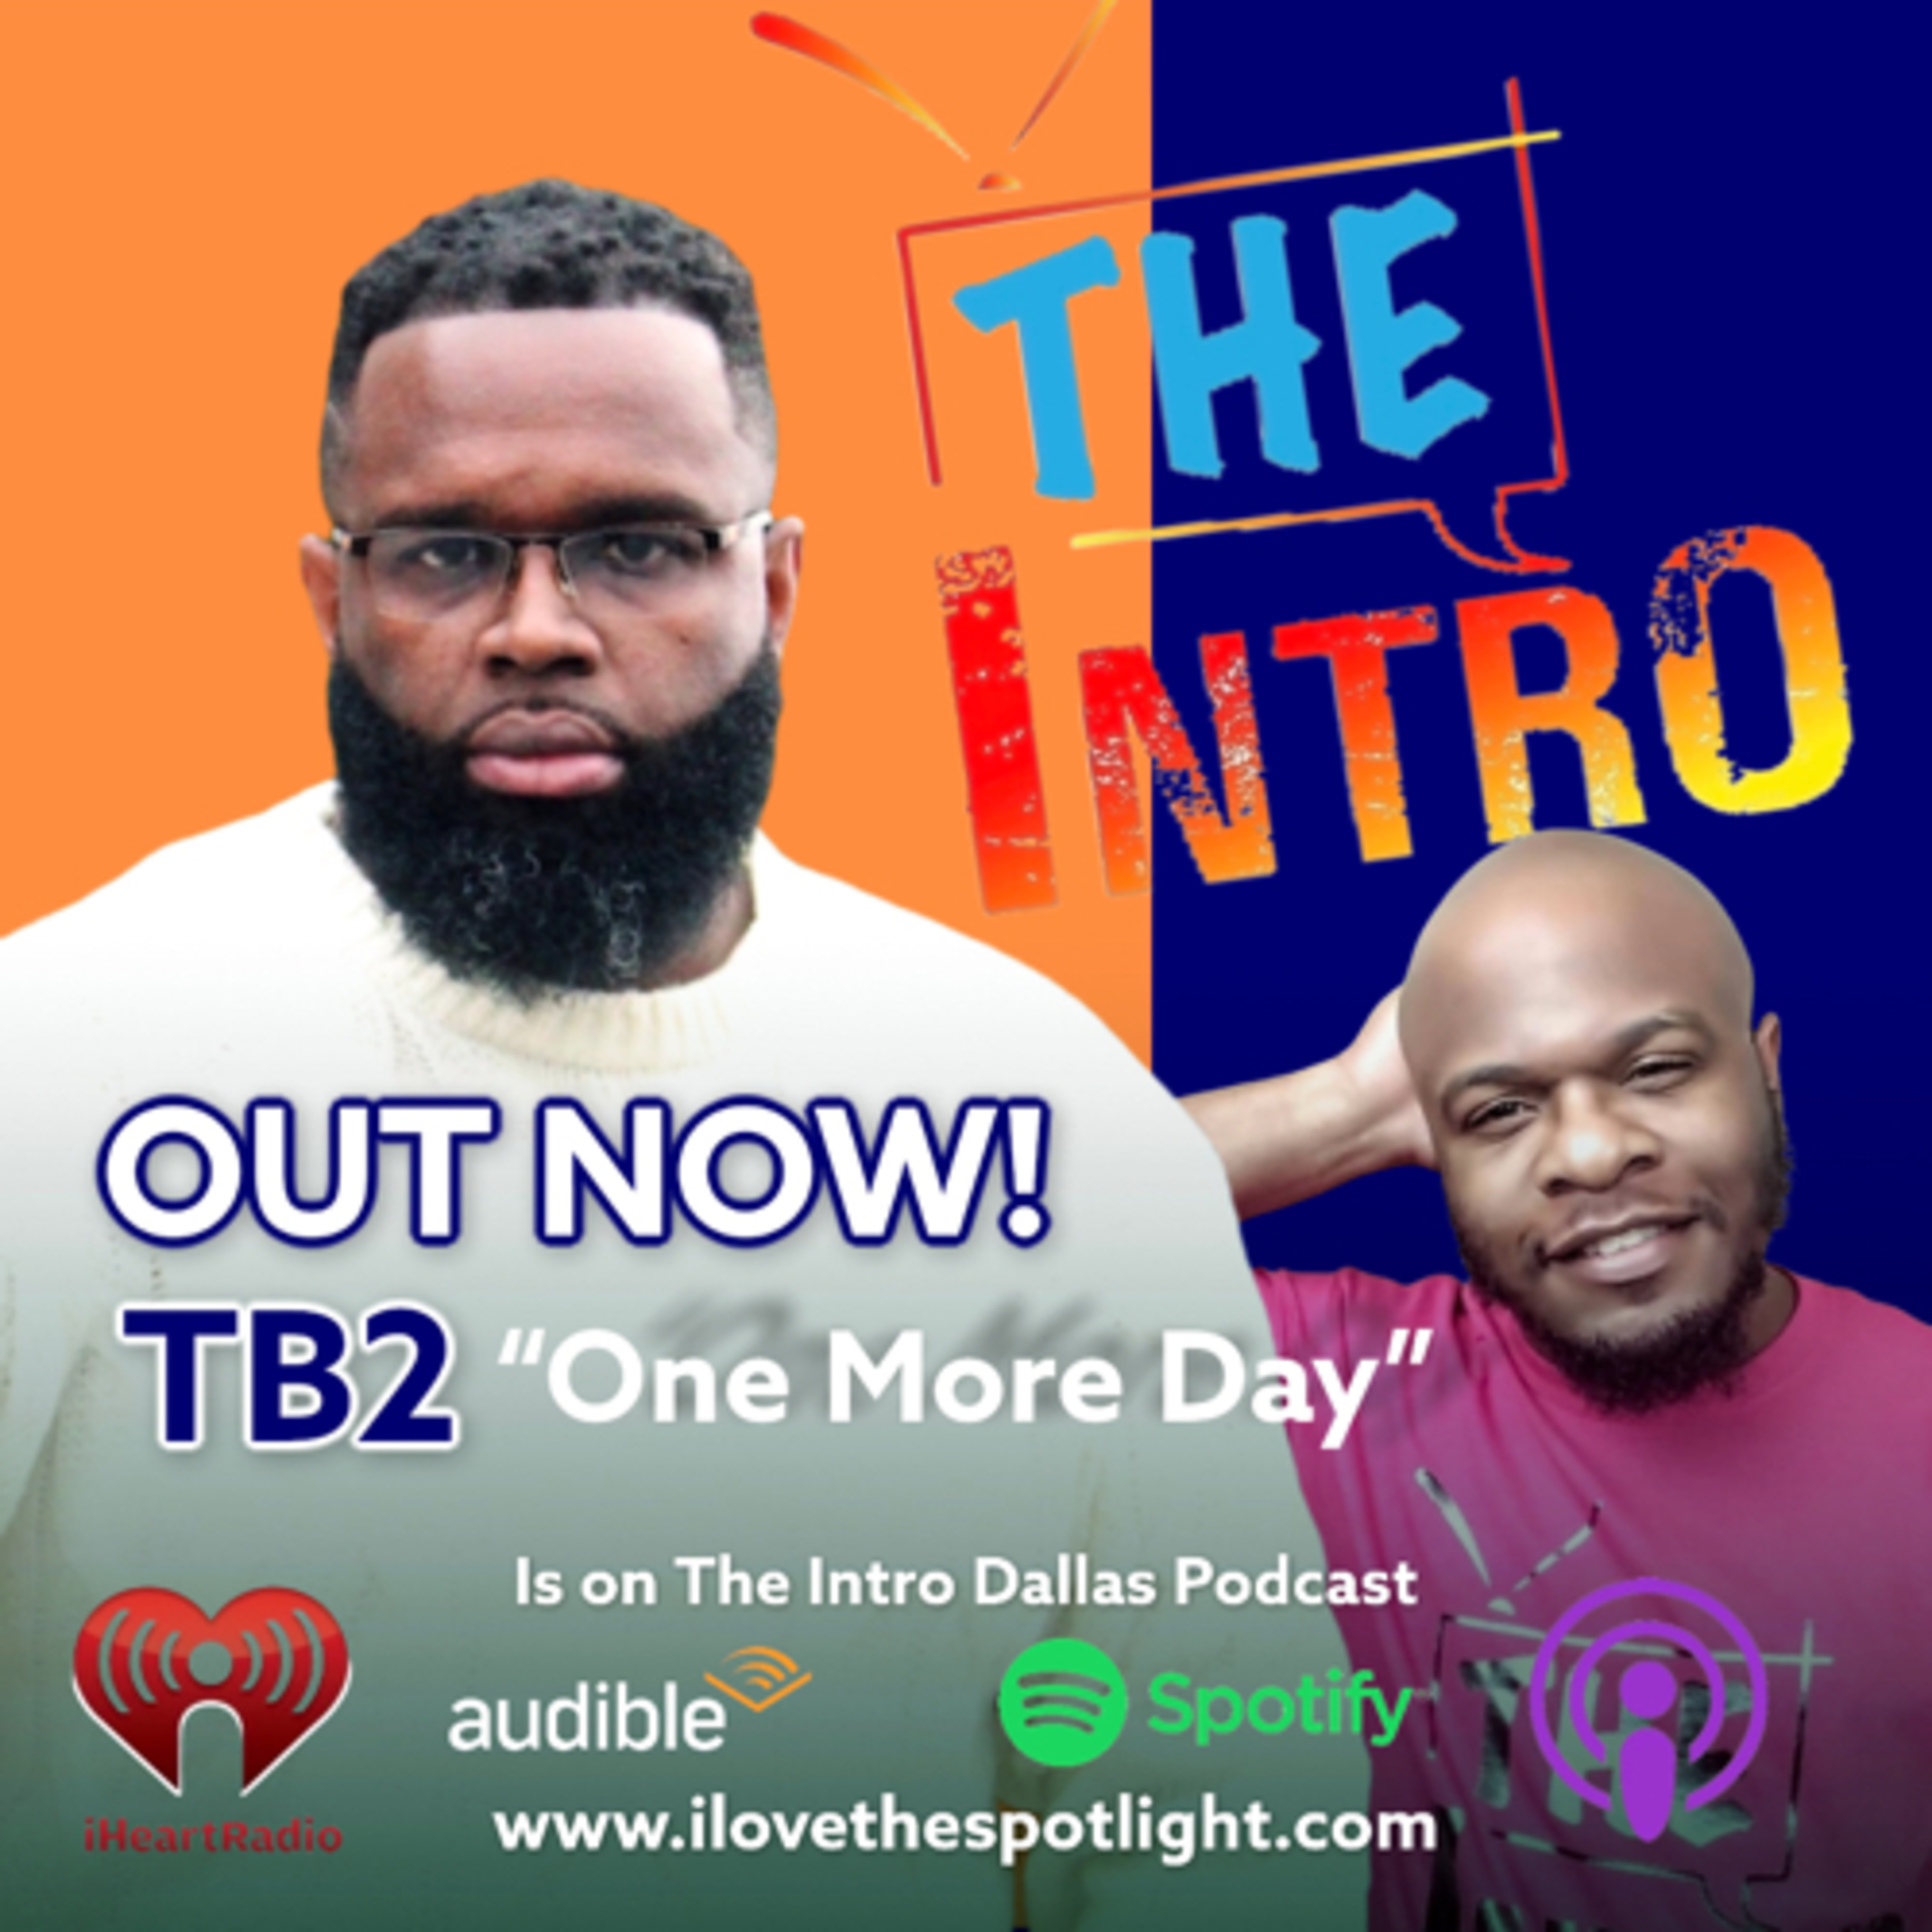 S2 Ep10 Happy New Years, Gospel Recording Artist TB2 visits.